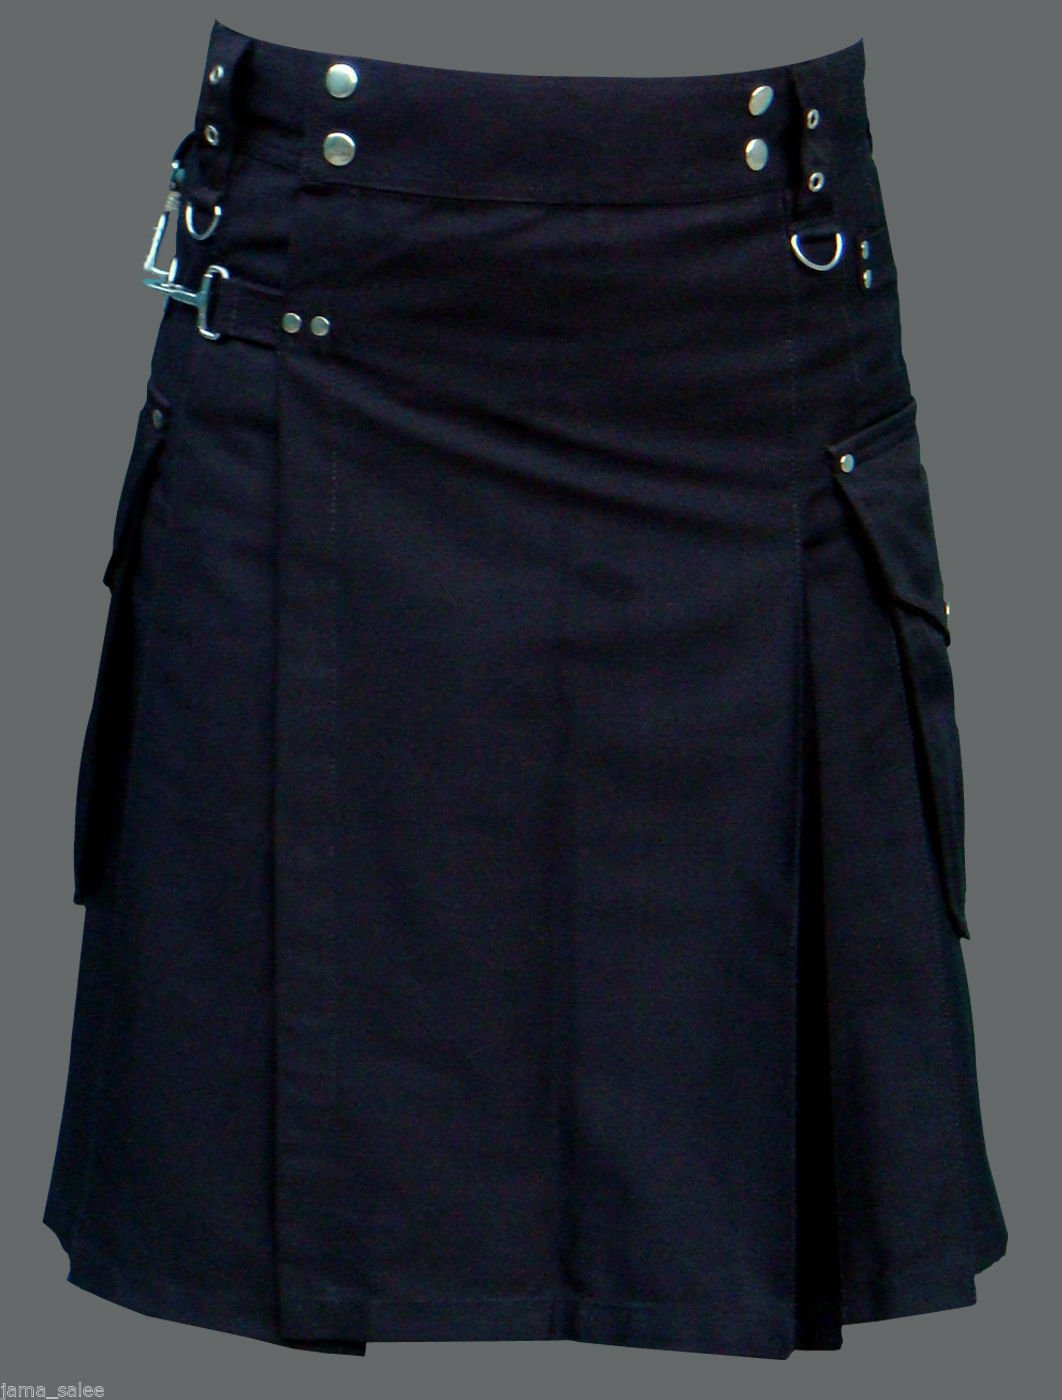 Deluxe Black Cotton Kilt Handmade Utility Gothic Modern Kilt with Cargo Pockets Waist Size 46 to Fit